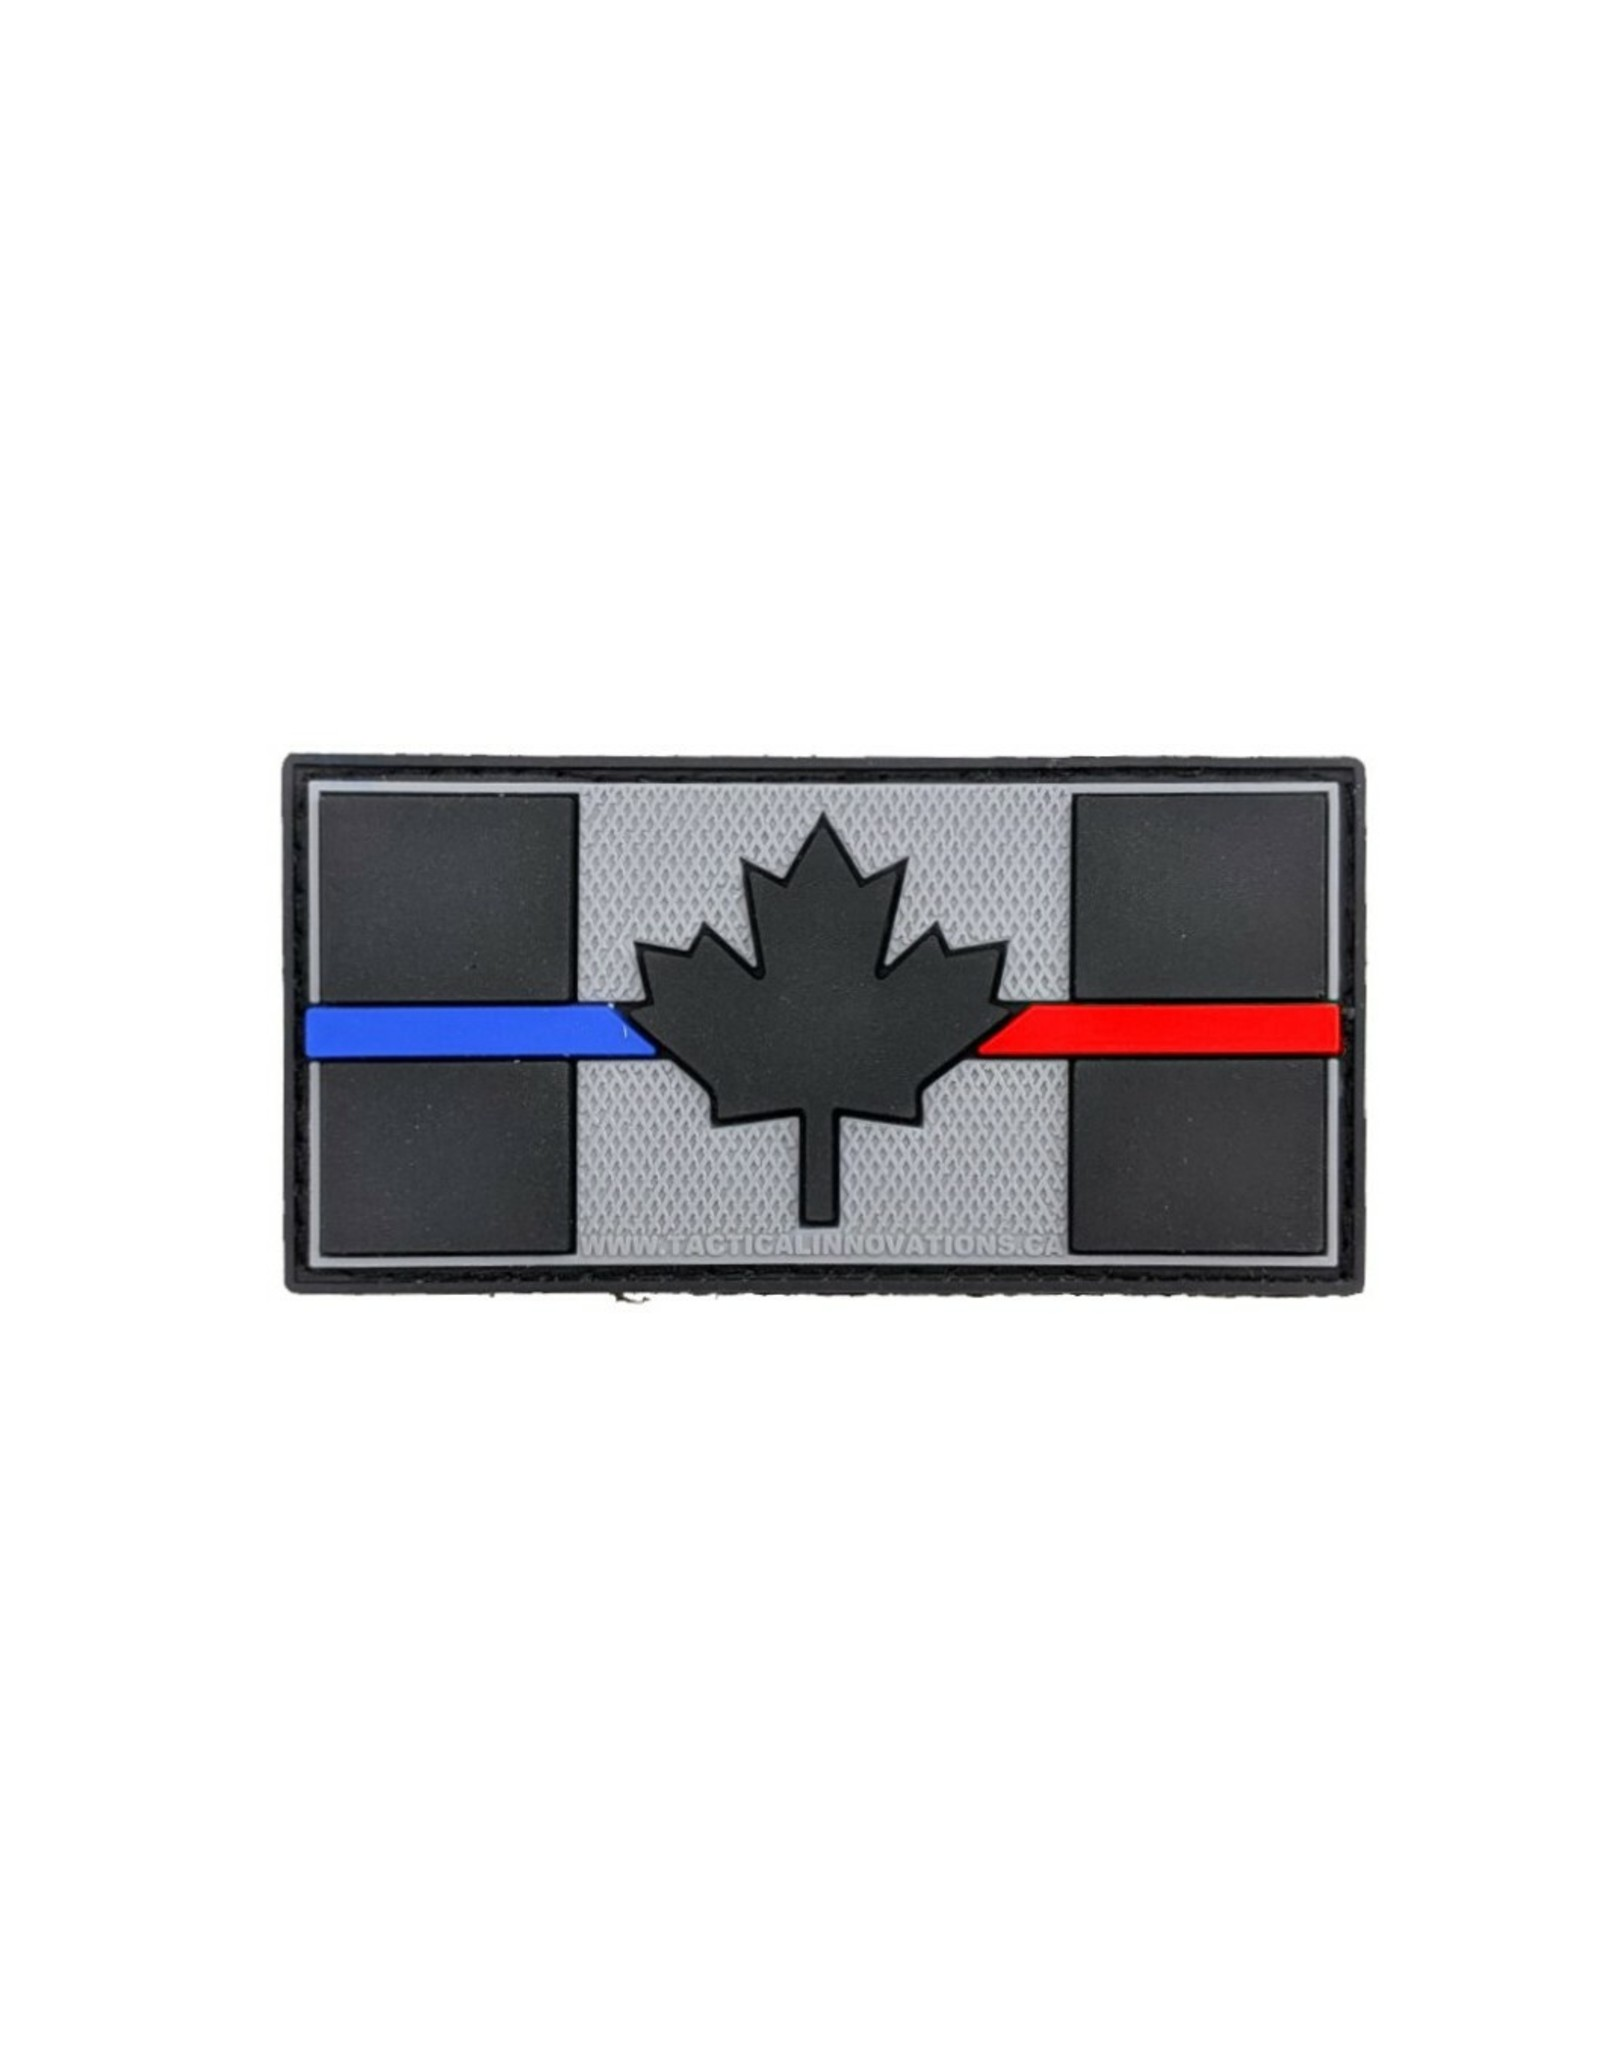 TIC Patch - THIN BLUE/RED LINE FLAG 1X2